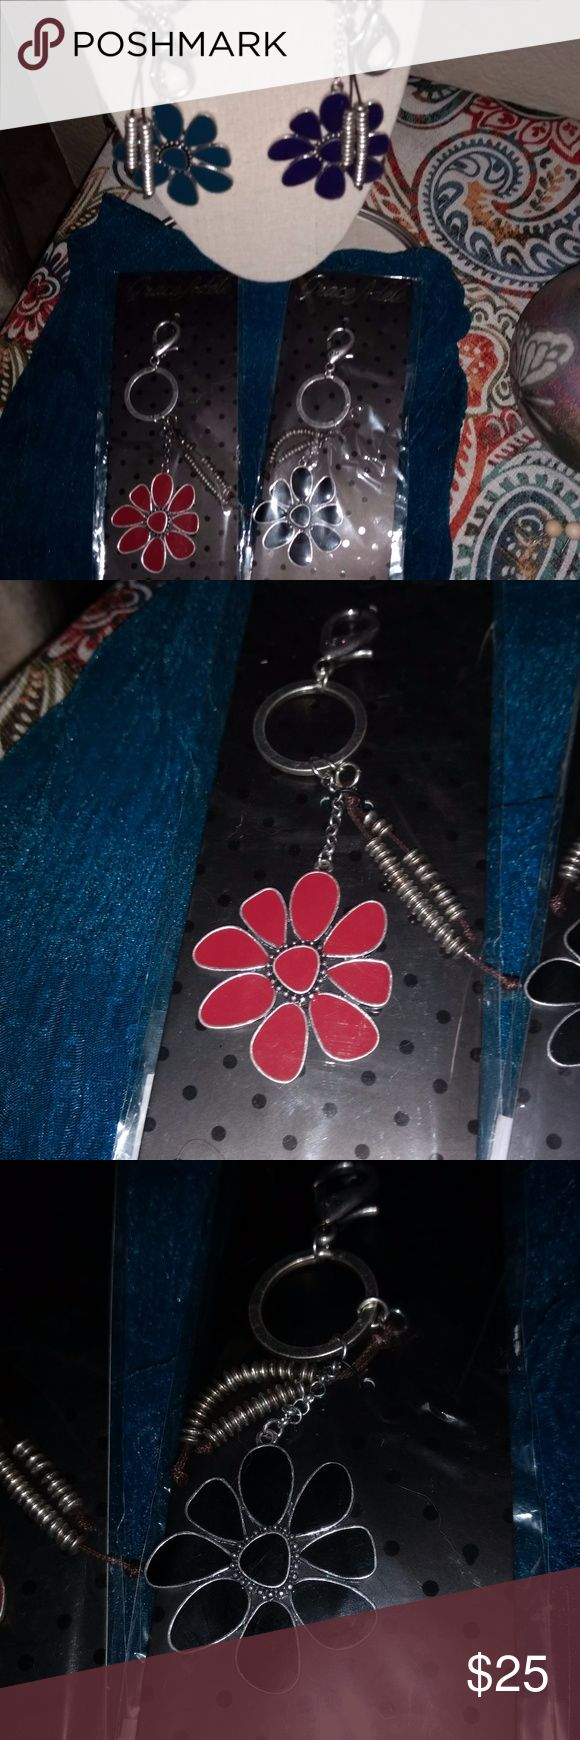 Grace Adele Flower Purse Jewelry / Key Fobs 4 Grace Adele Purse Jewelry / Key Fobs.  You can use as purse decoration or as a key chain.  I am listing together for one price.  If you are interested in only, please leave me a message to say which color you would like.  Black, red, orange and Teal/blue flowers.  4 for $25 or $8 each. Grace Adele Accessories Key & Card Holders